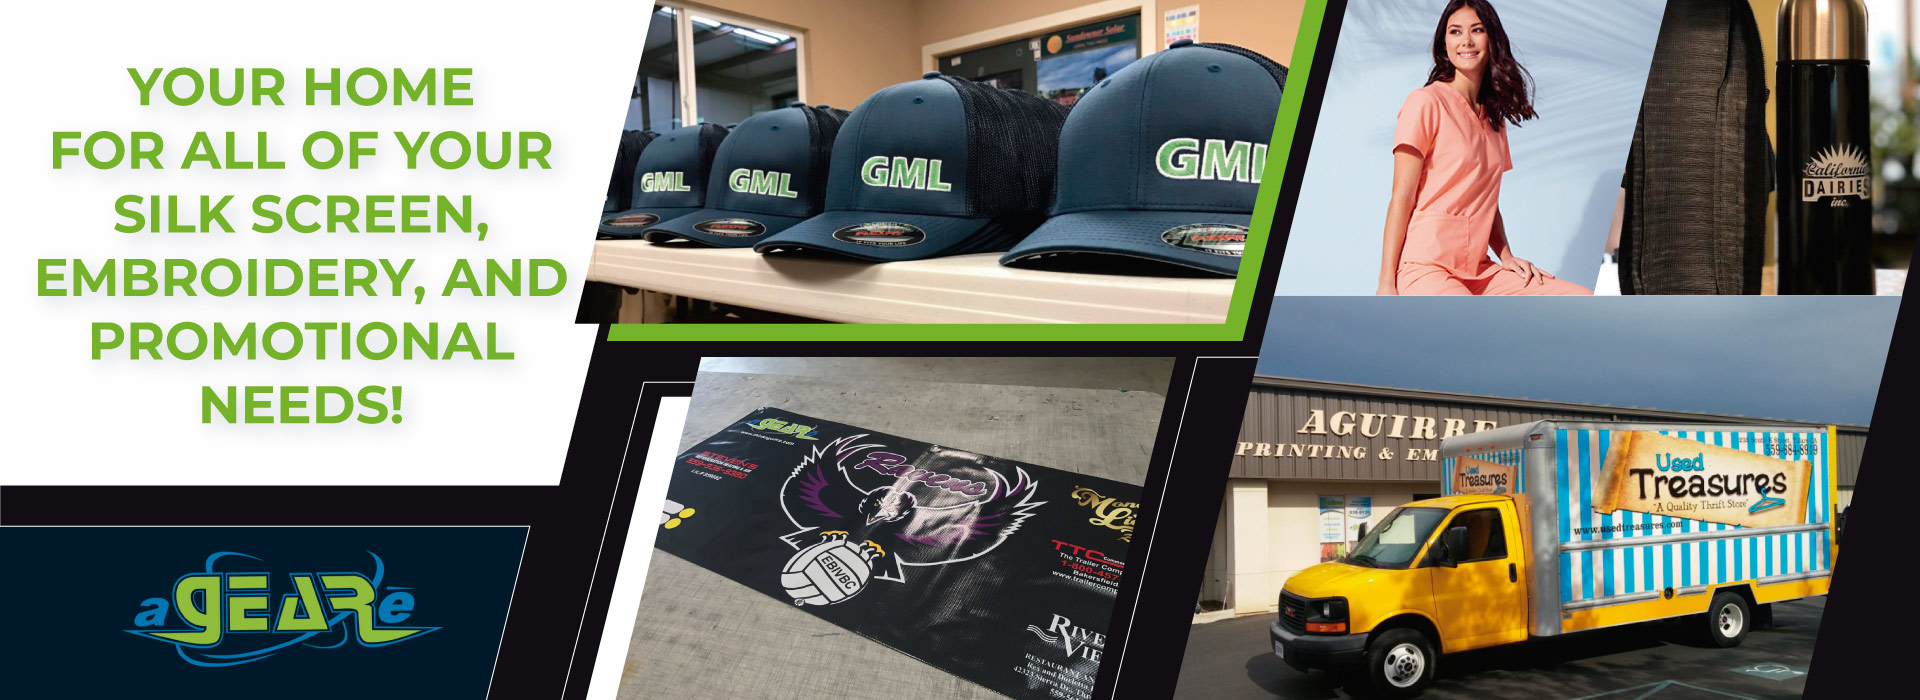 your home for all of your promotional needs